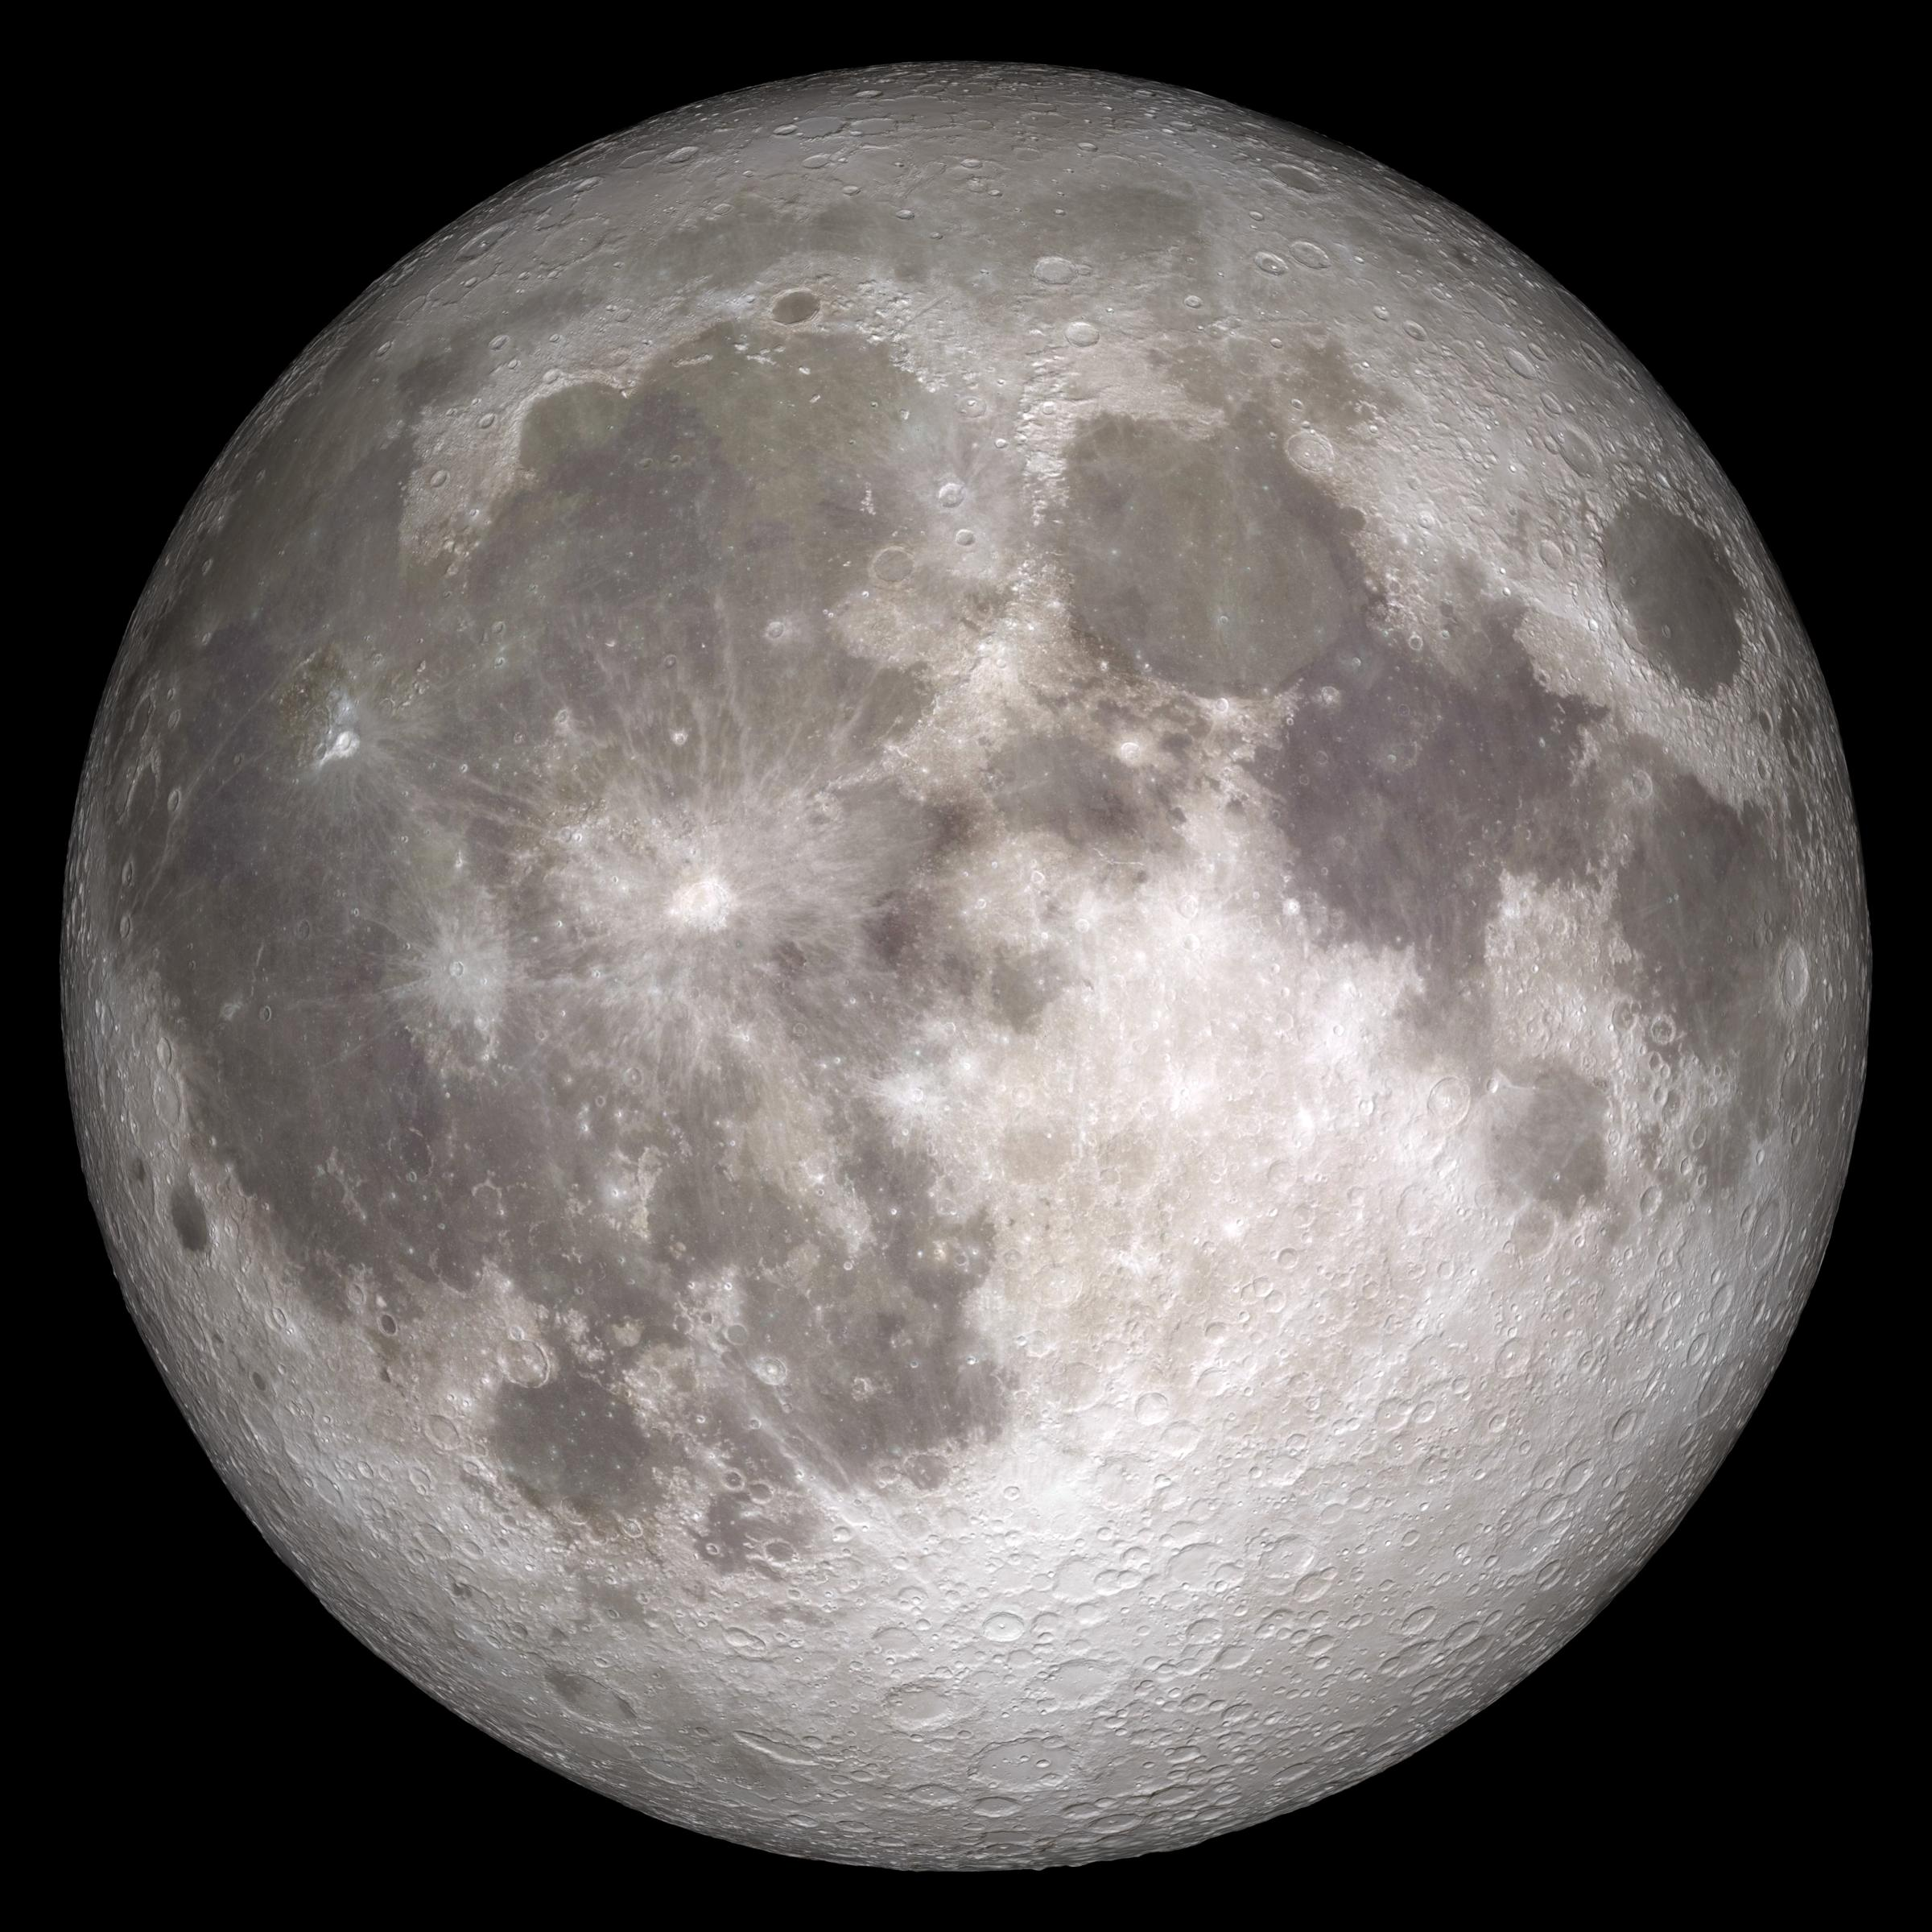 Moon - LRO - Full Moon.jpg